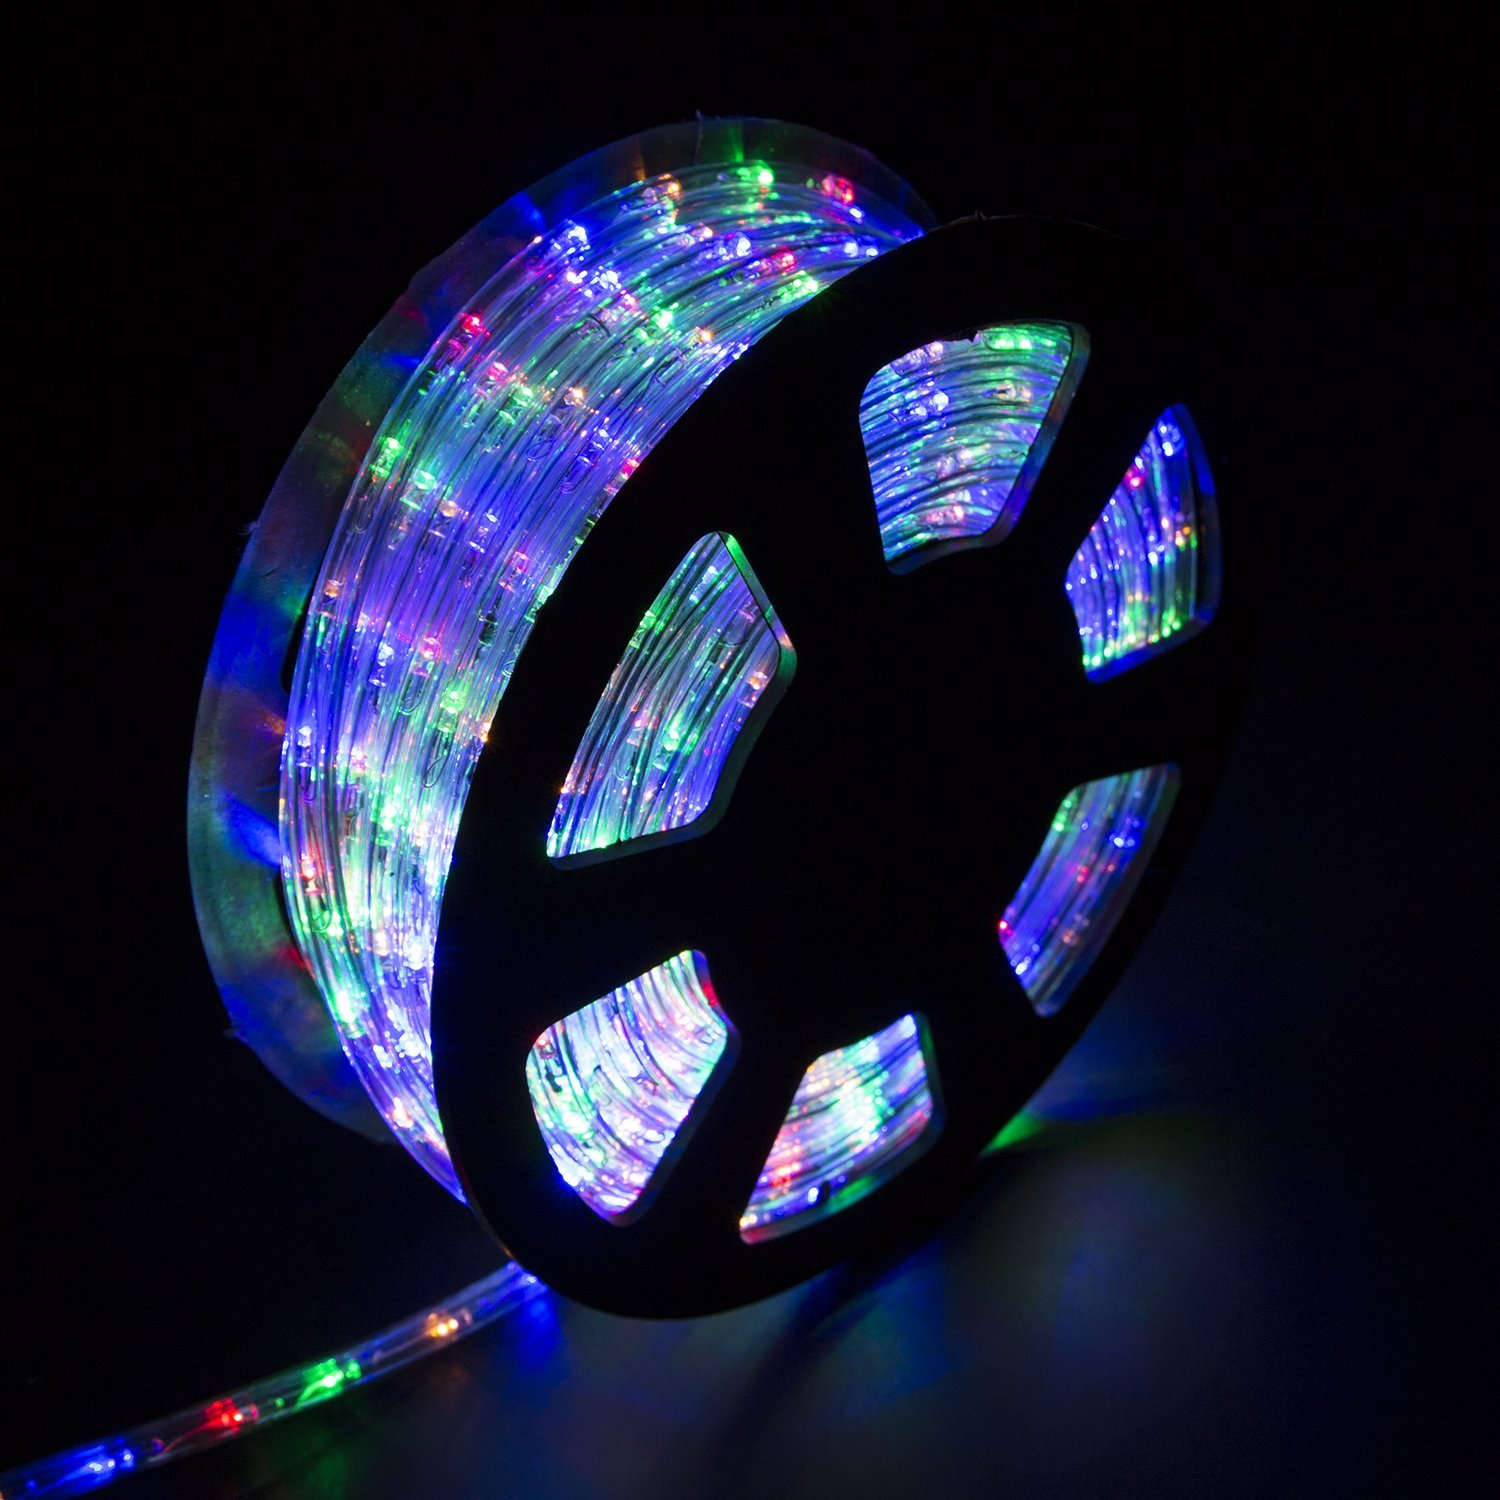 Diophros 150FT Rope Light, LED Strip Lights for Indoor Outdoor Rope Lighting Waterproof Decorative Lighting Backyards Garden and Party Decoration (Multicolor)